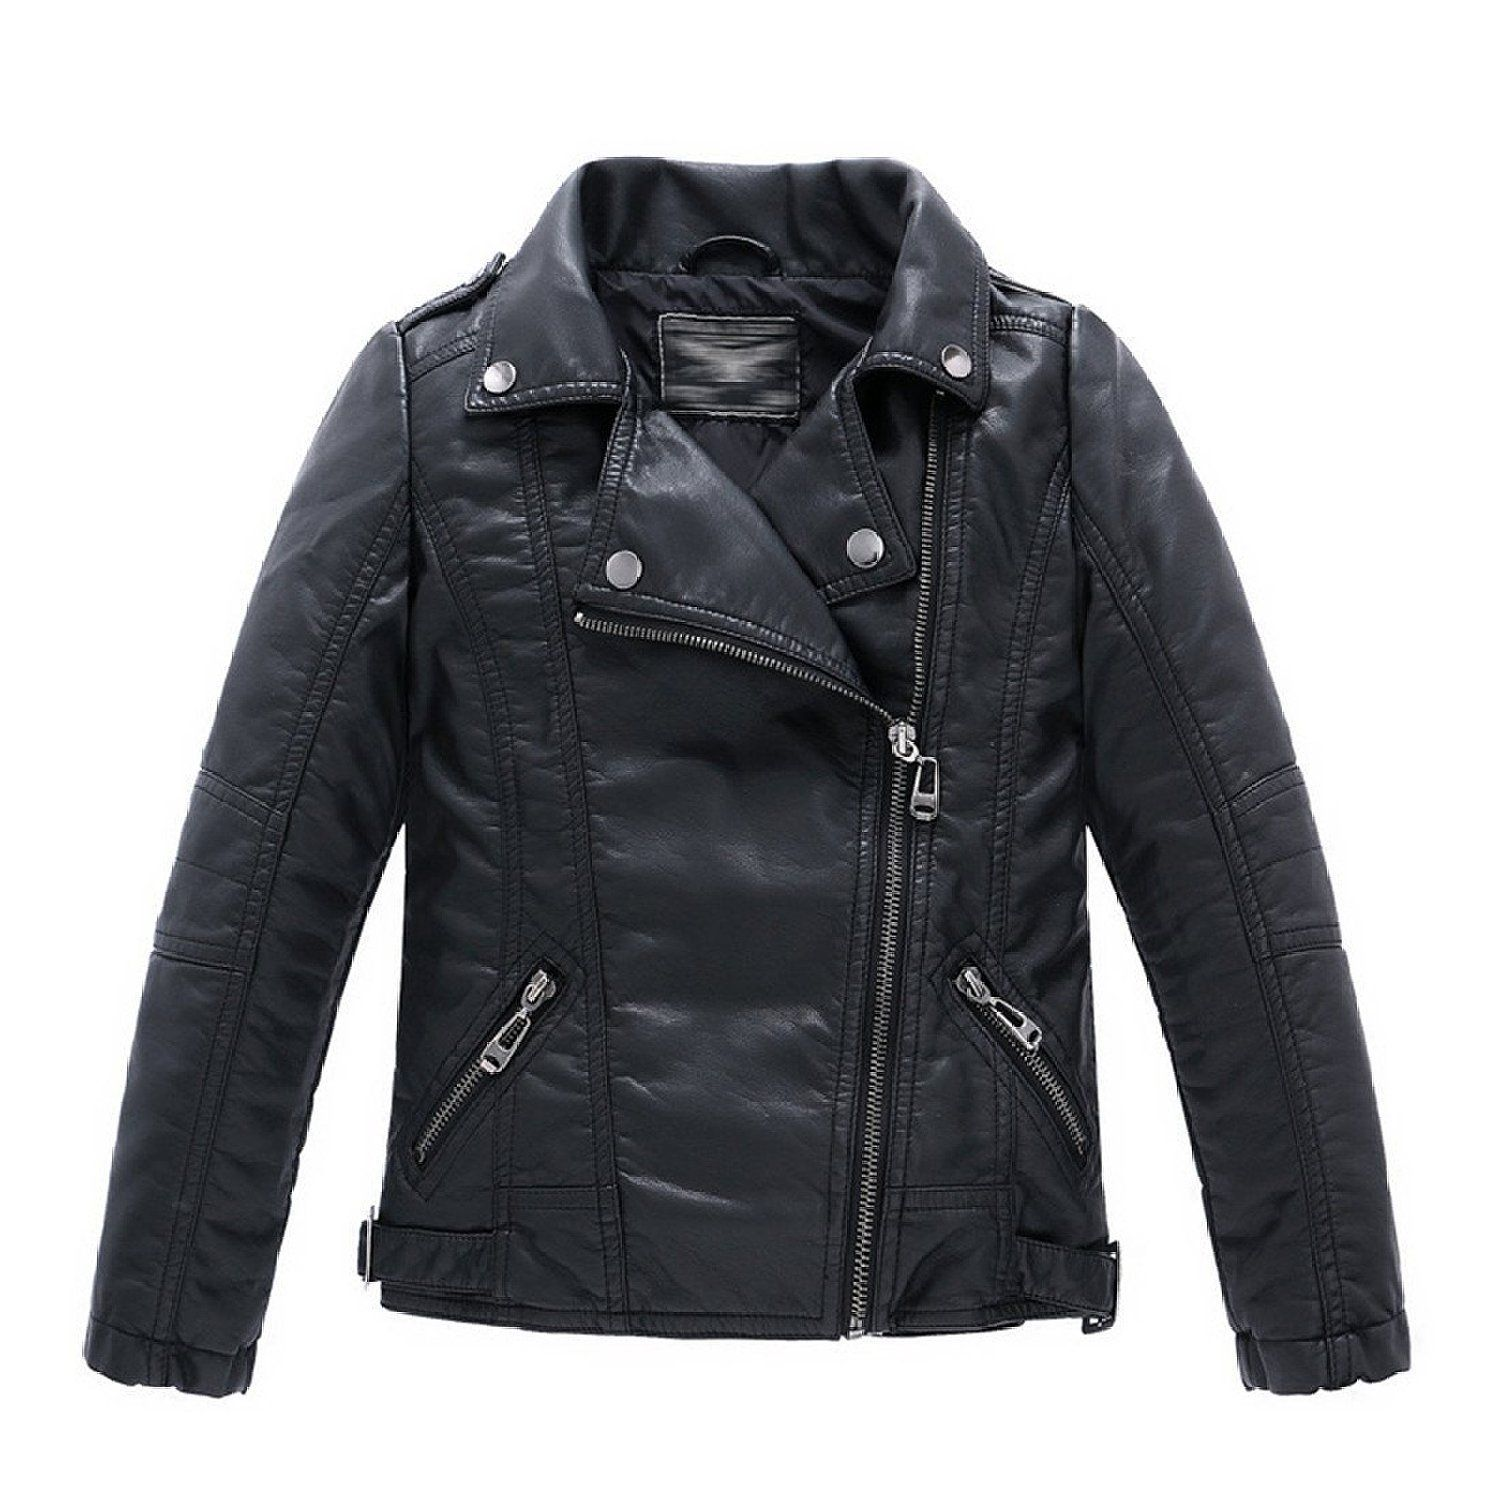 a9b816a9e Boys Collar Motorcycle Faux Leather Coat Zip Leather Jacket (3-4T ...